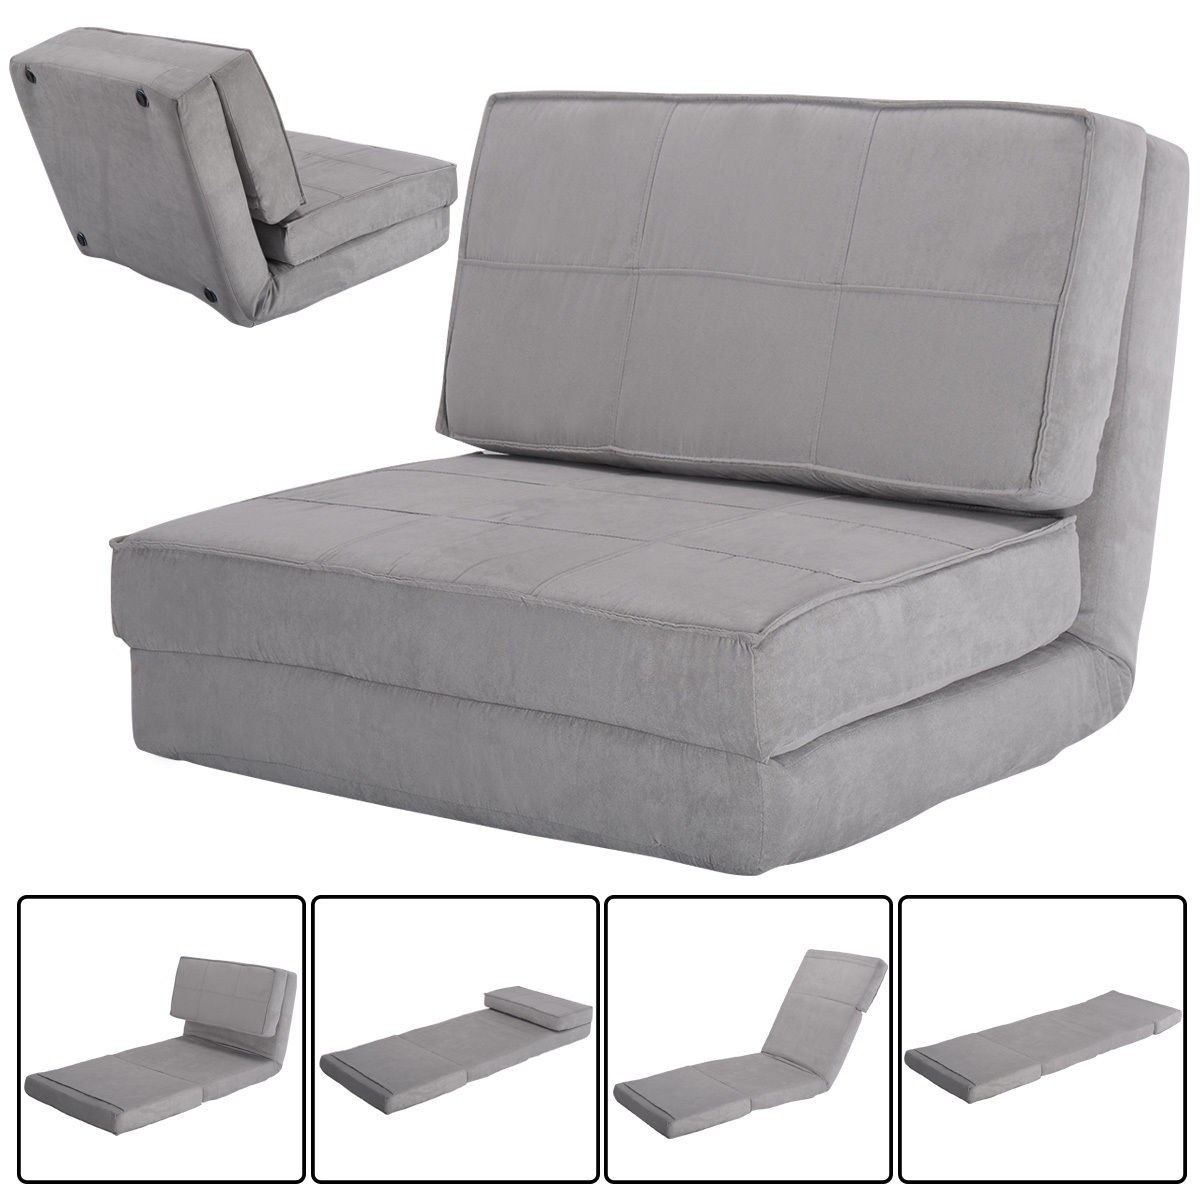 Convertible Lounger Folding Sofa Sleeper Bed Sofas Furniture Within Folding Sofa Chairs (Image 4 of 15)